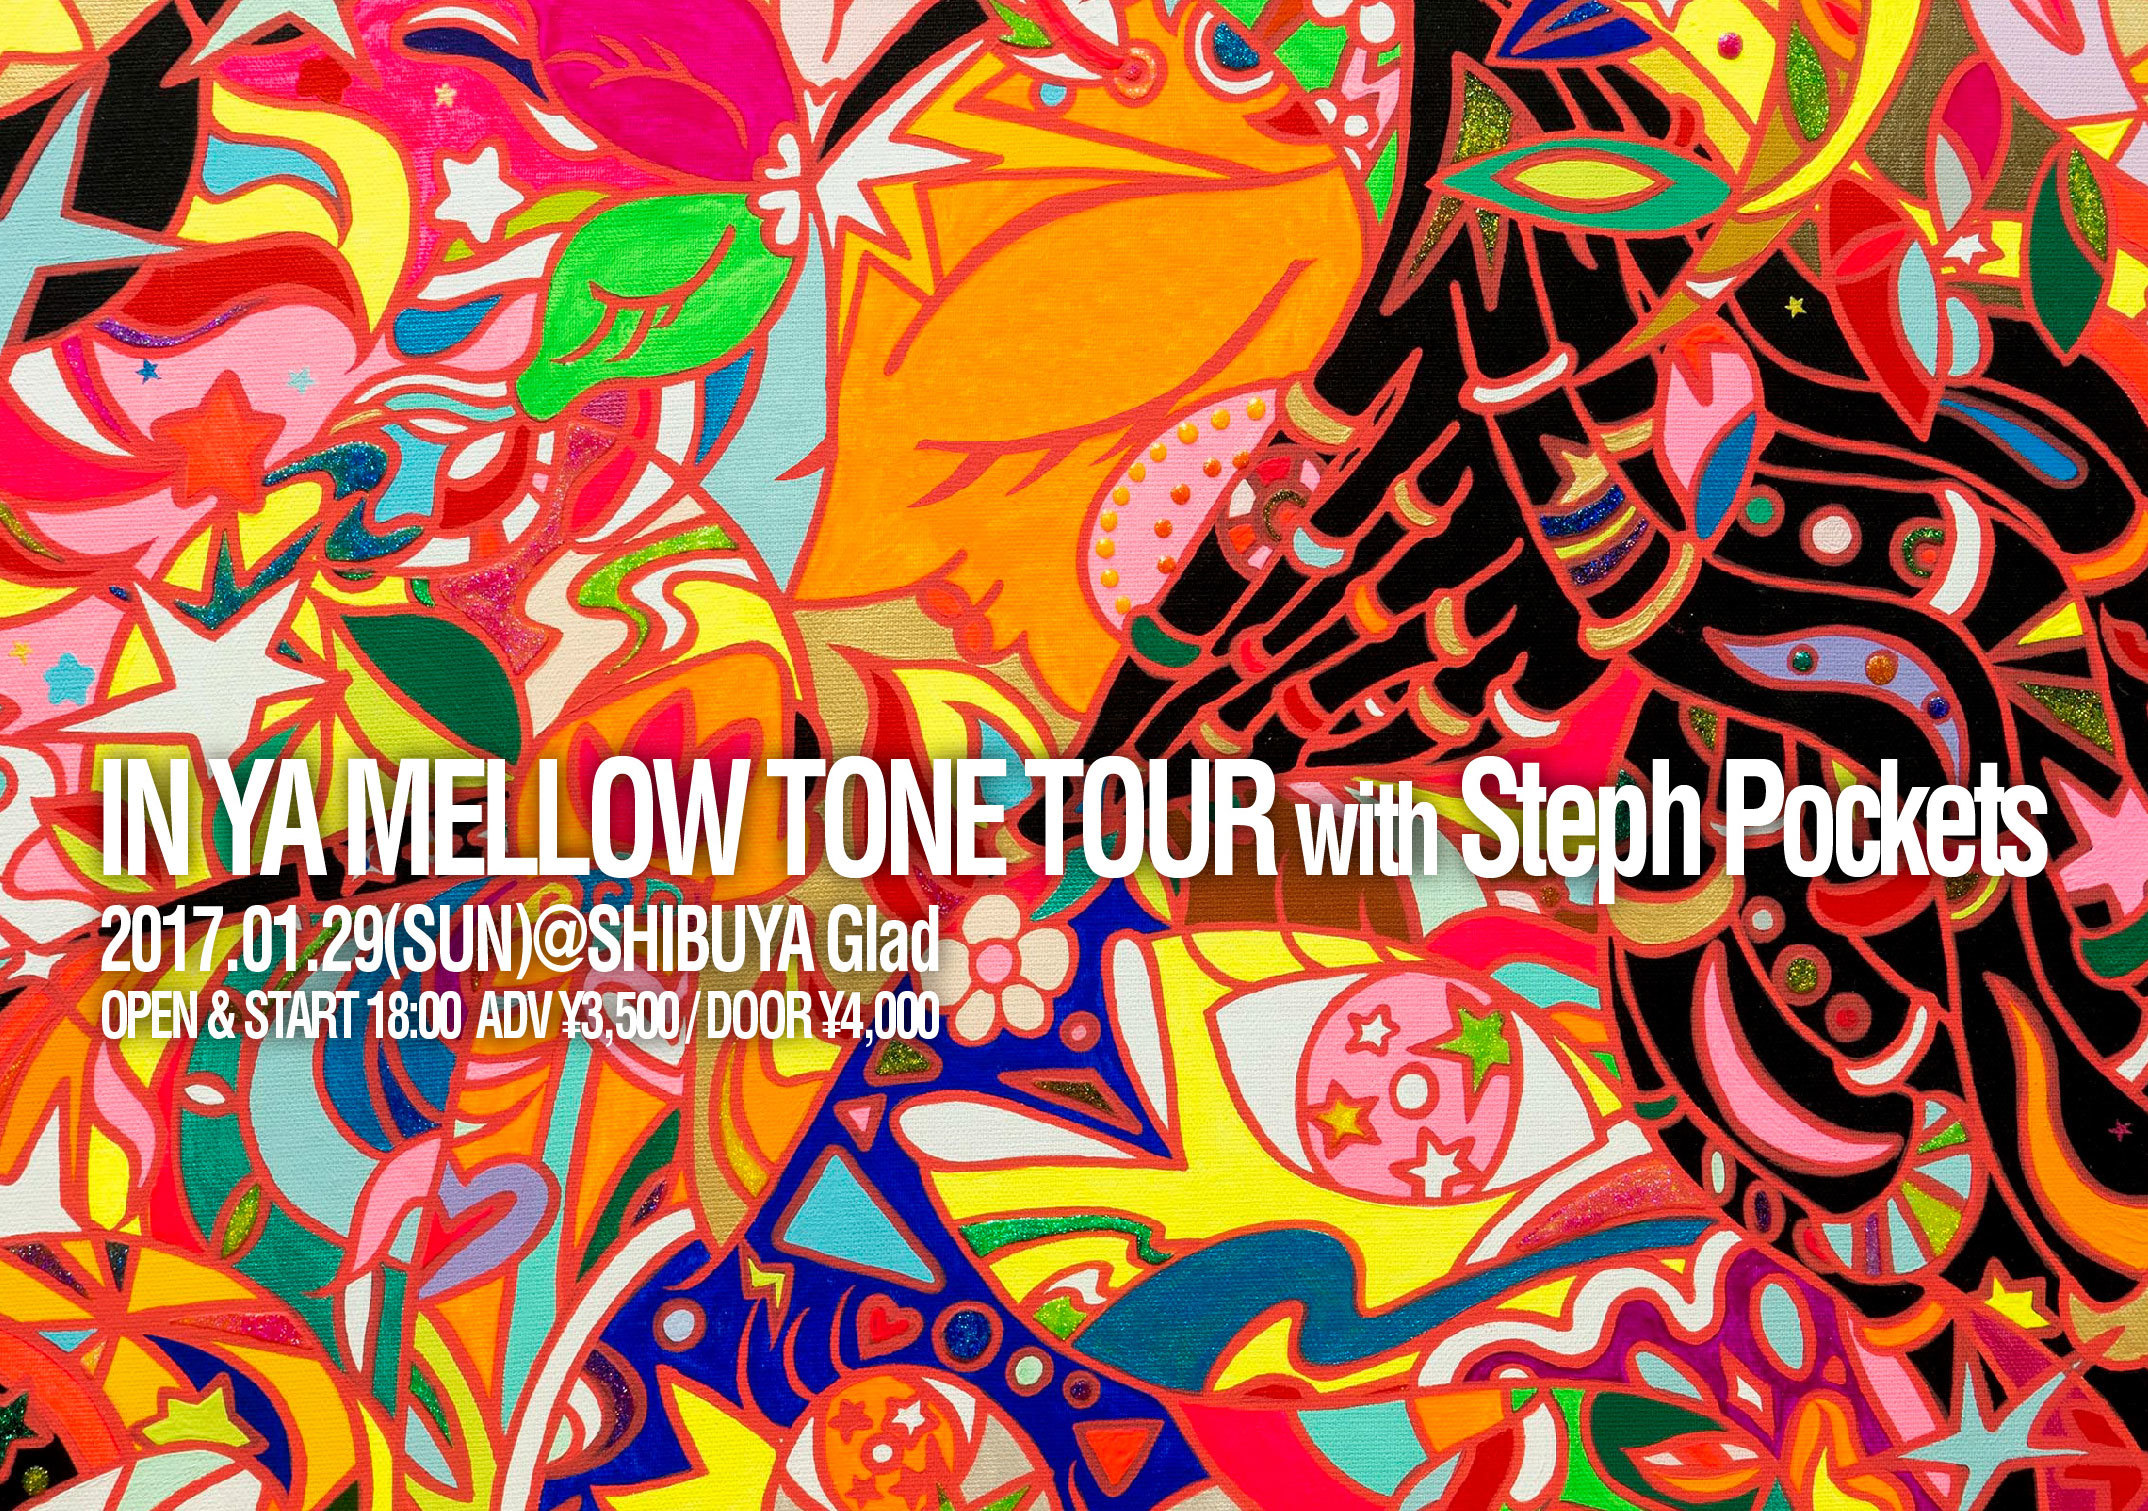 【Steph Pockets JAPAN TOURプラン】